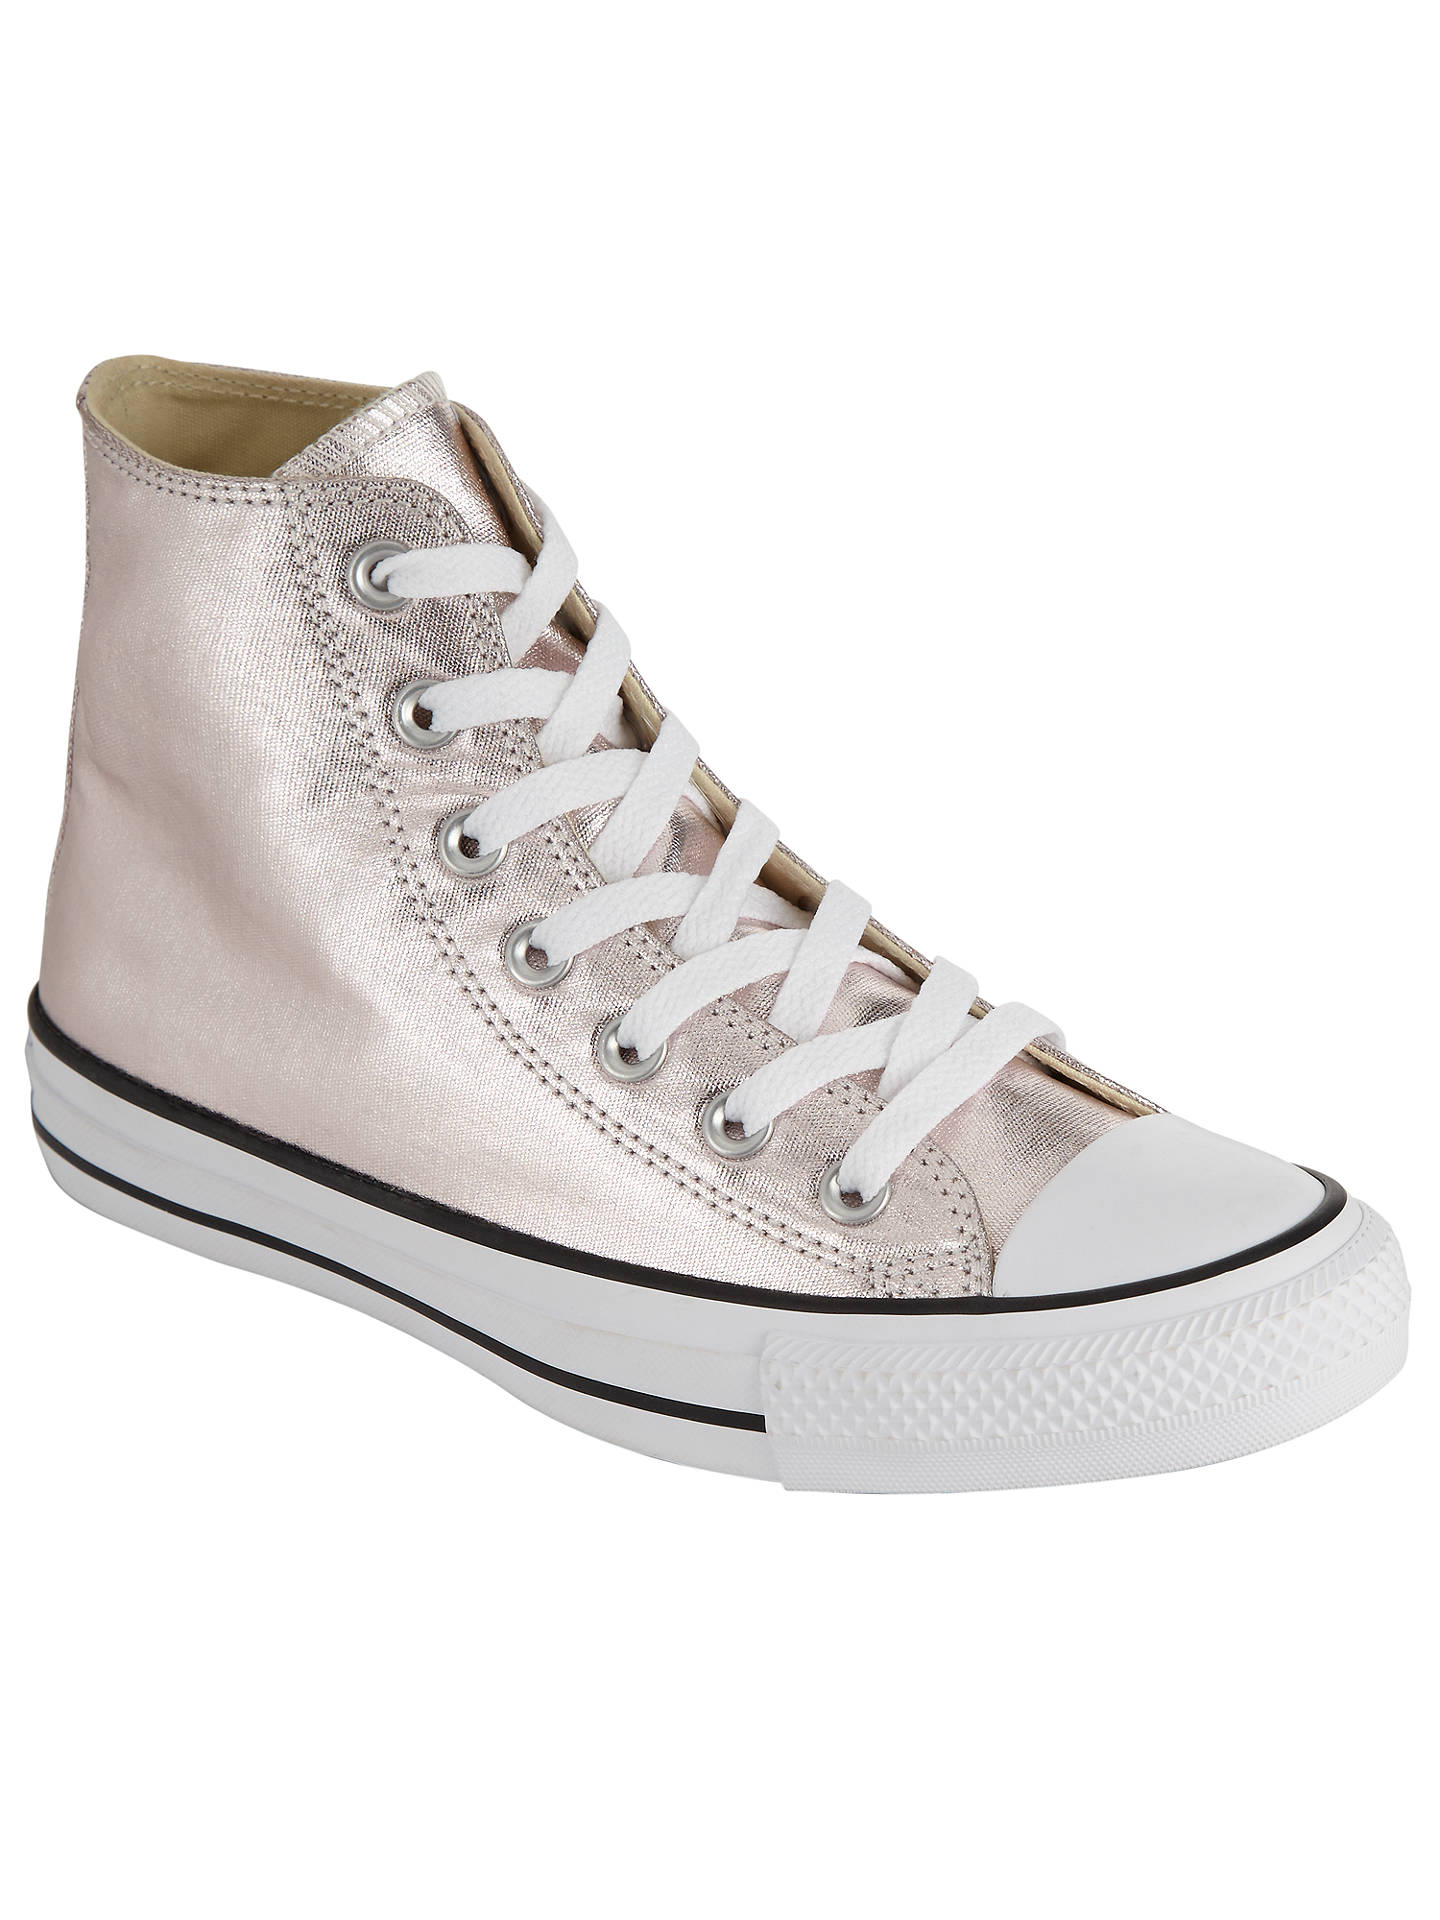 Converse Toddler Sneakers Chuck Taylor All Star Low Top Rose Quartz Choose Size